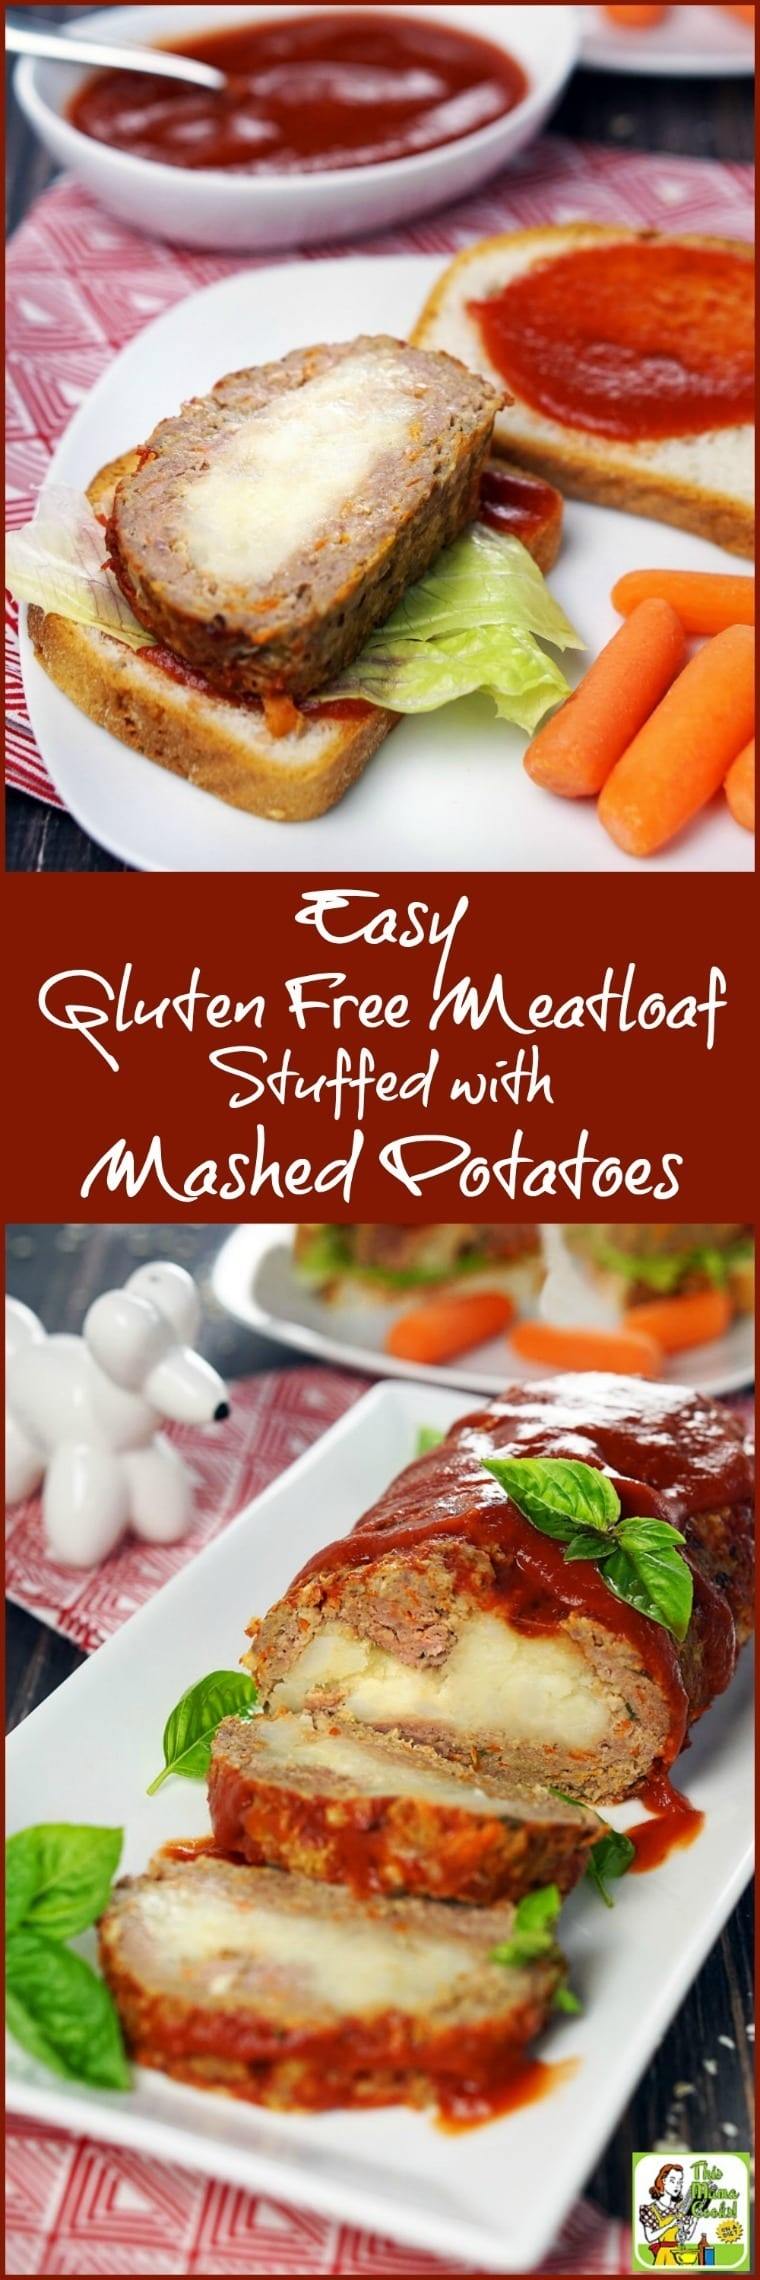 Looking for back to school sandwich ideas? Check out this Easy Gluten Free Meatloaf Stuffed with Mashed Potatoes recipe. Dinner leftovers make delicious gluten free sandwiches that your kids will love.